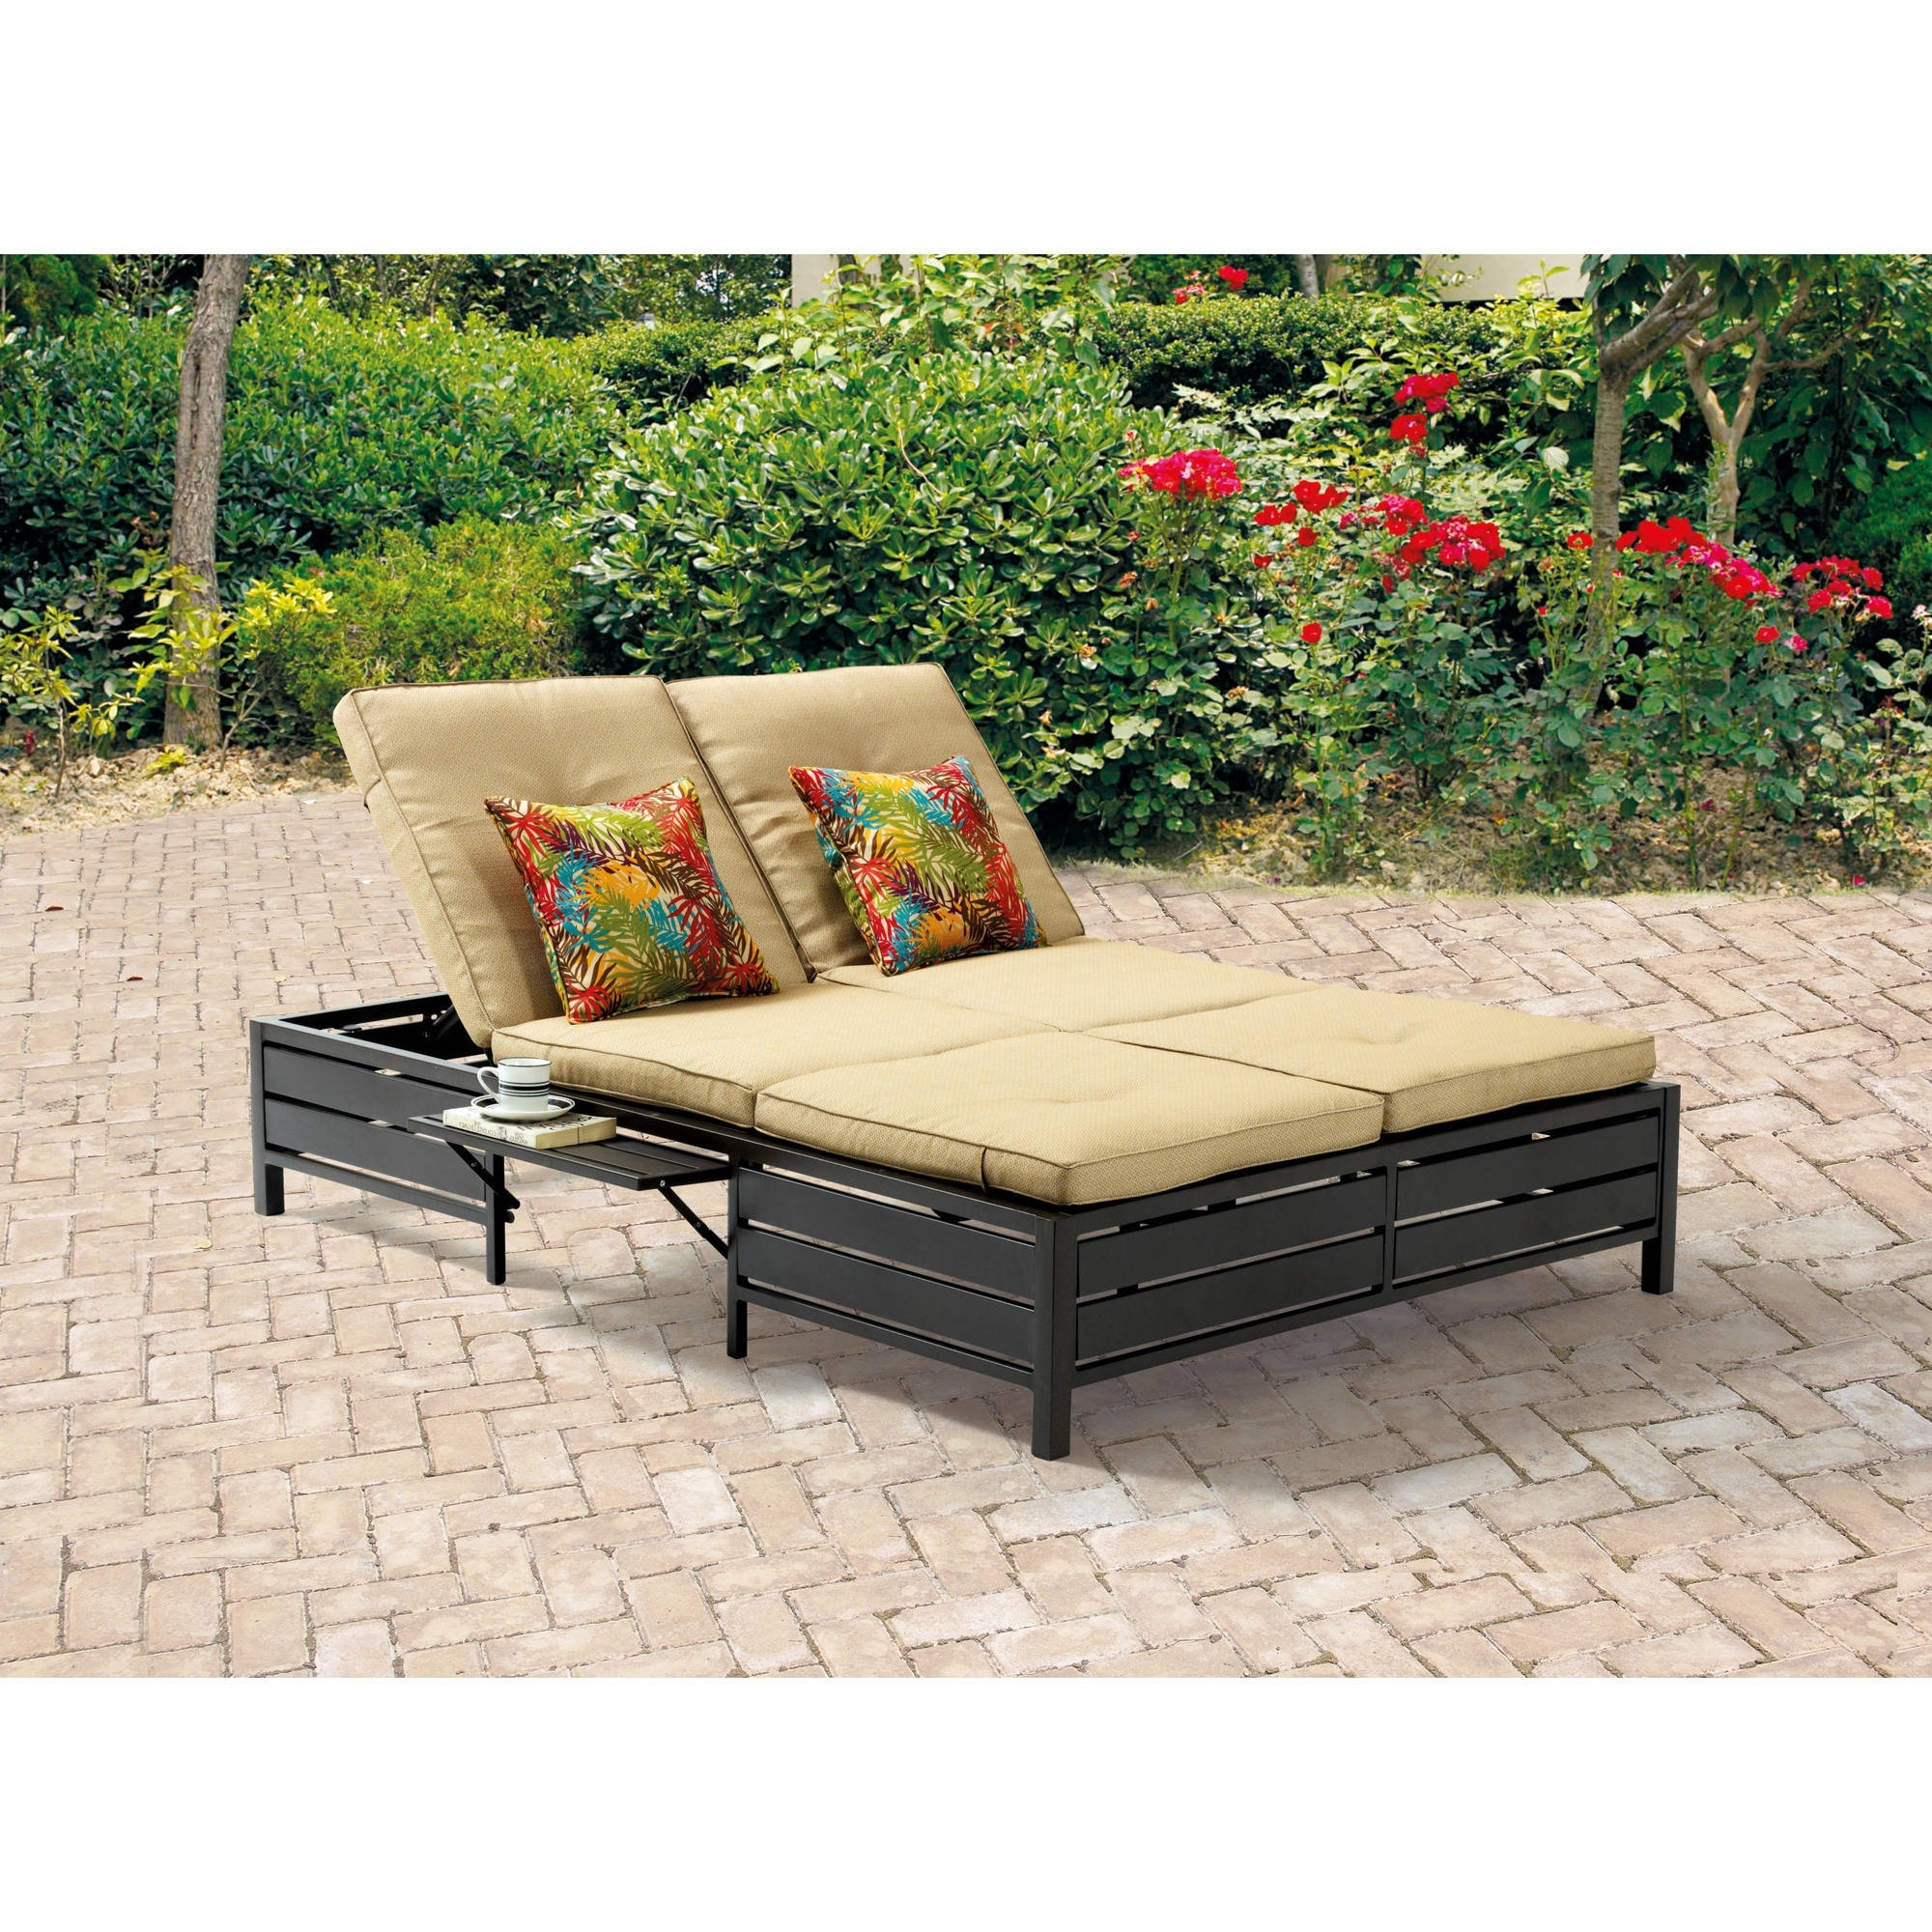 Latest Outdoor Chaise Lounges – Walmart Intended For Walmart Outdoor Chaise Lounges (View 2 of 15)